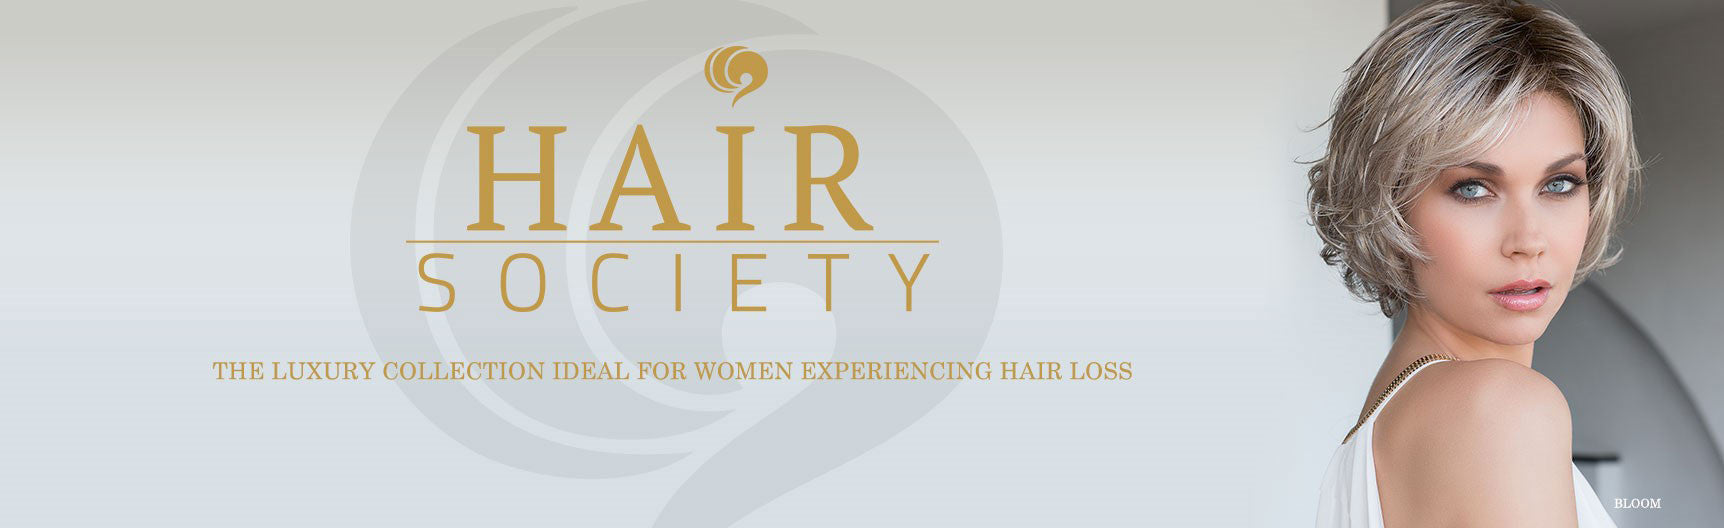 NEW Hair Society Luxury Collection by Ellen Wille